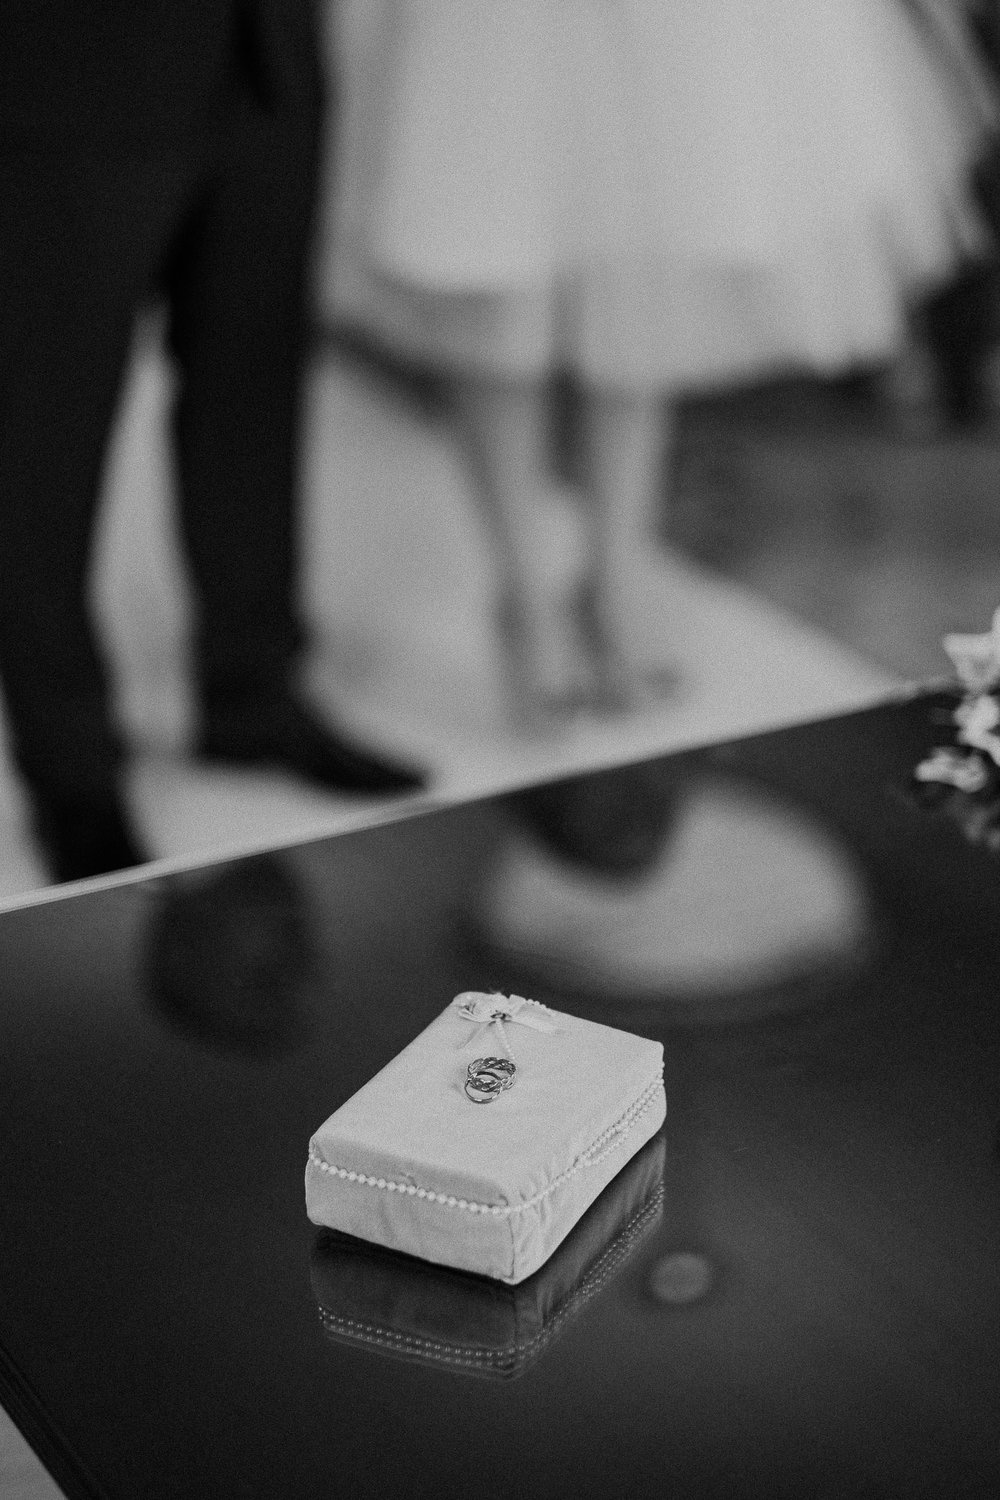 Black and white photo of wedding rings during ceremony with bride and groom behind